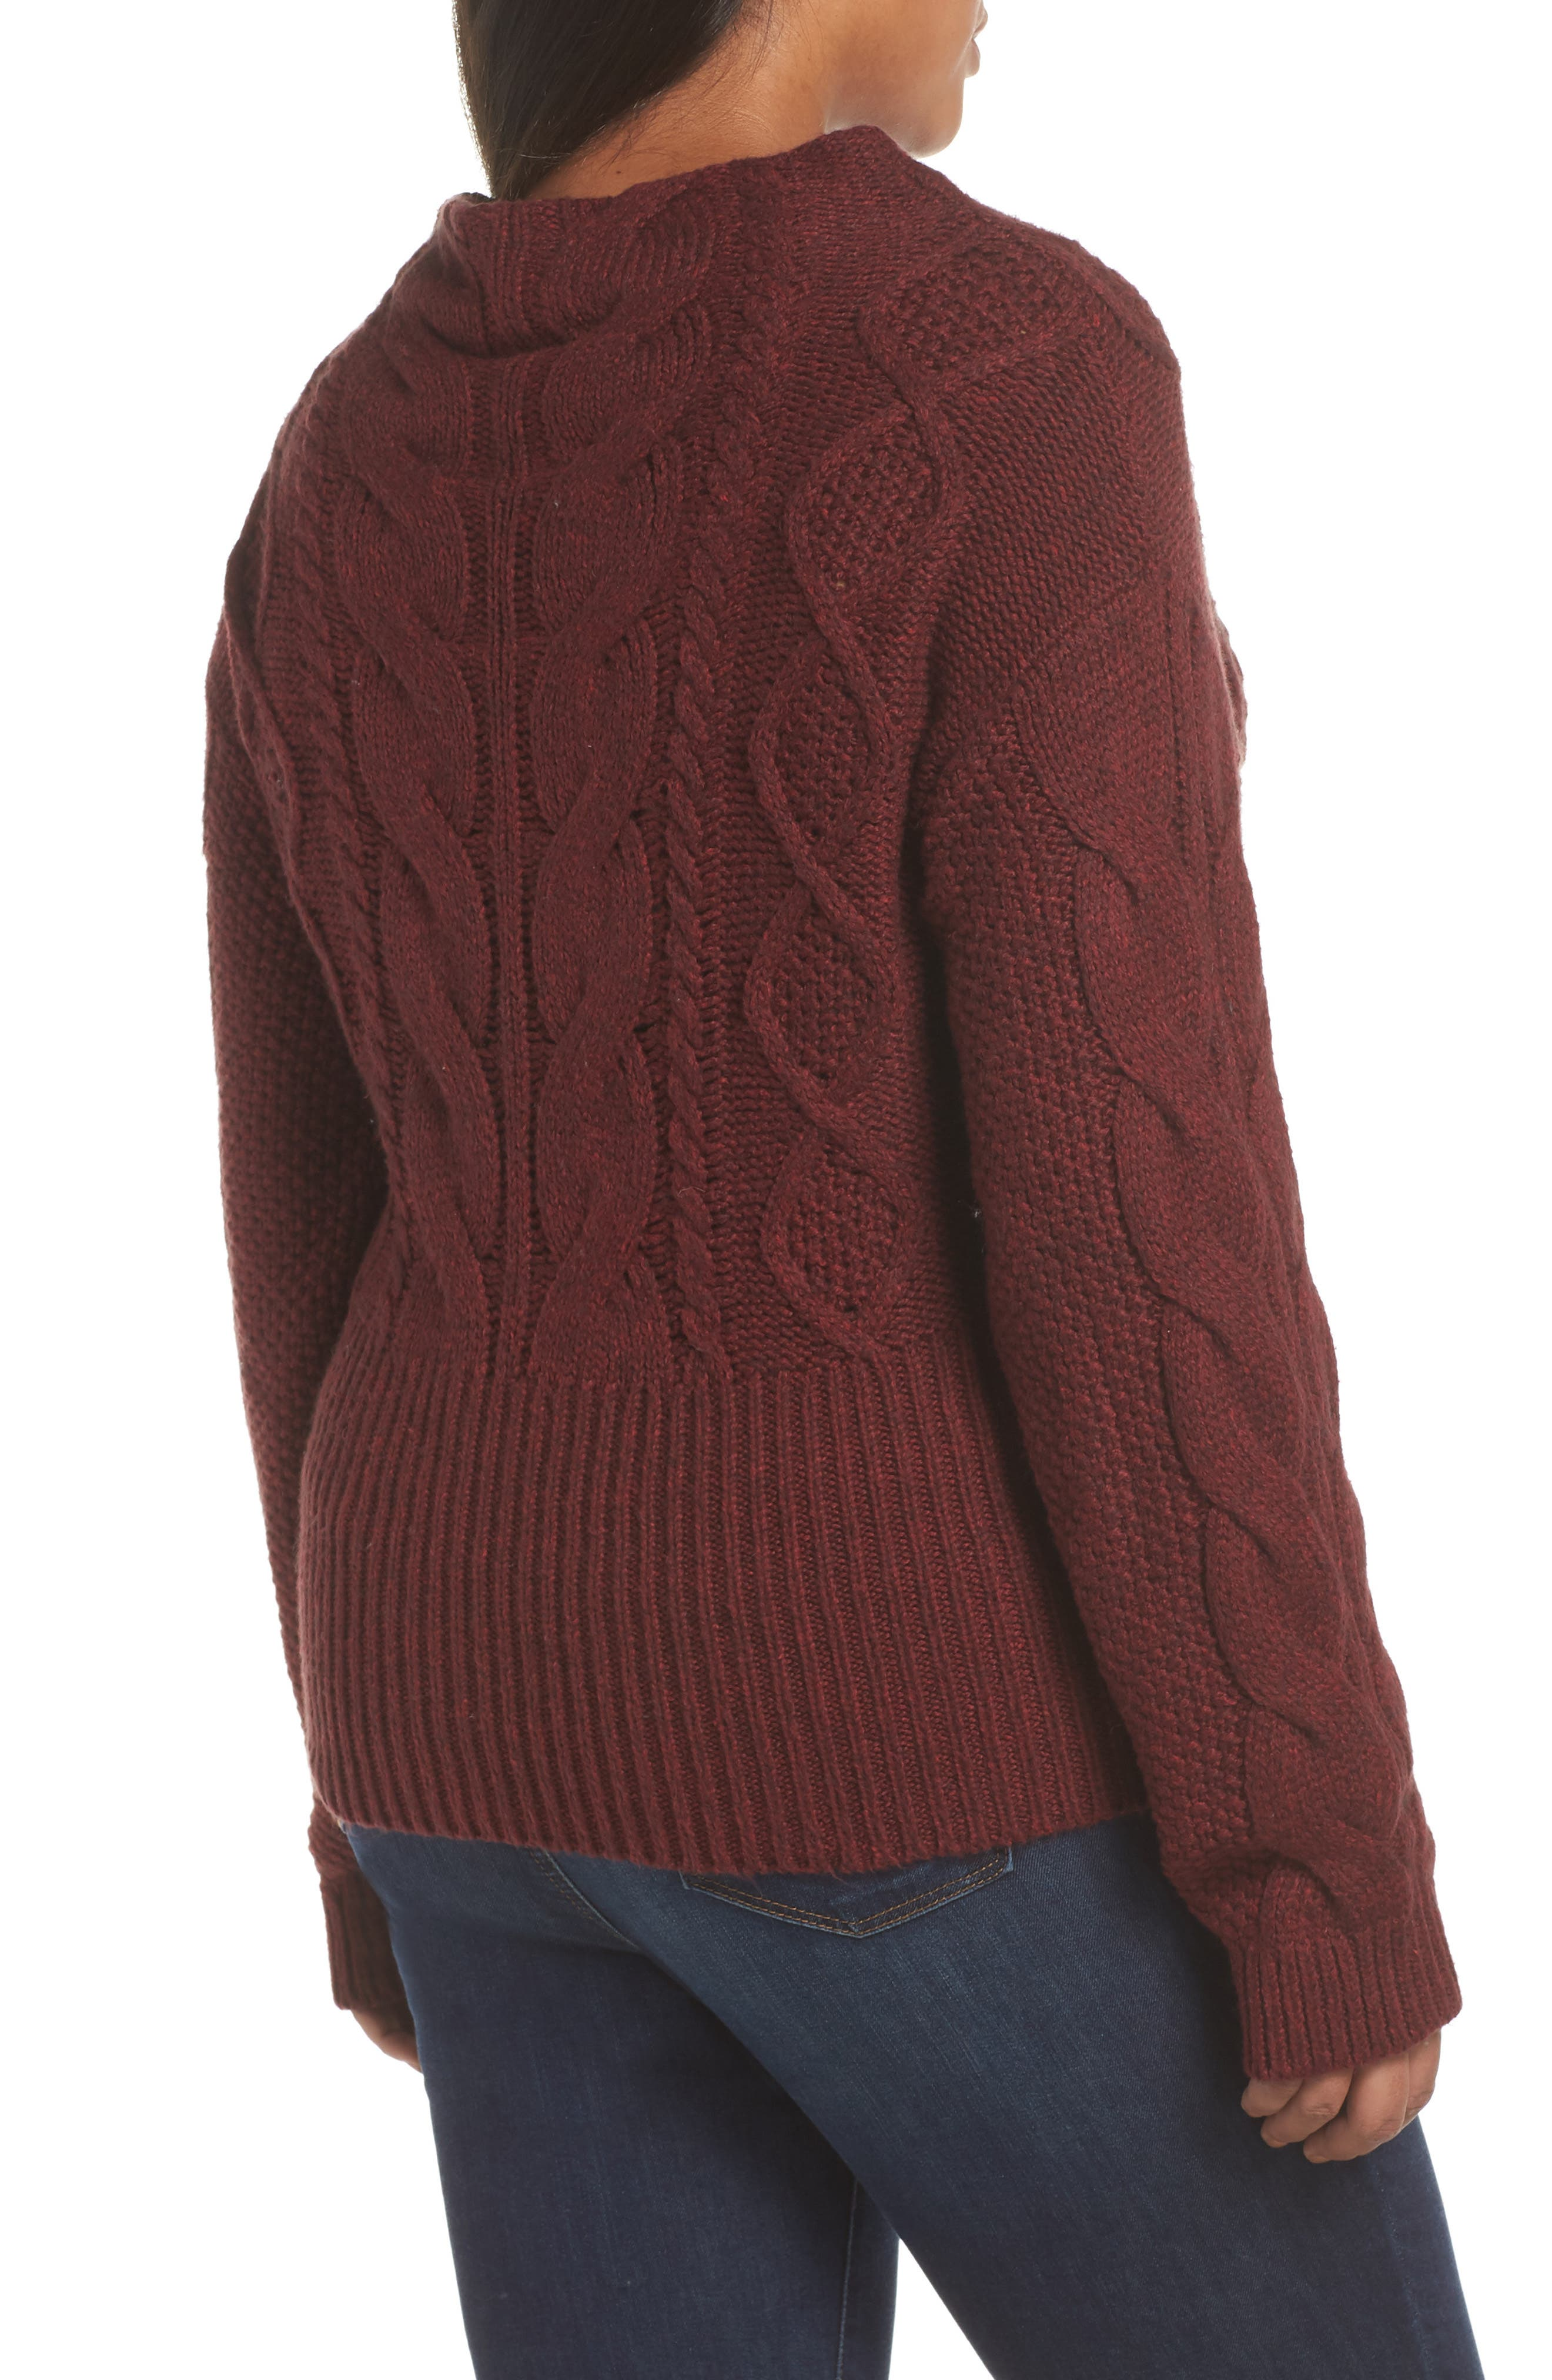 Cotton Blend Cable Knit Sweater,                             Alternate thumbnail 4, color,                             MANOR RED